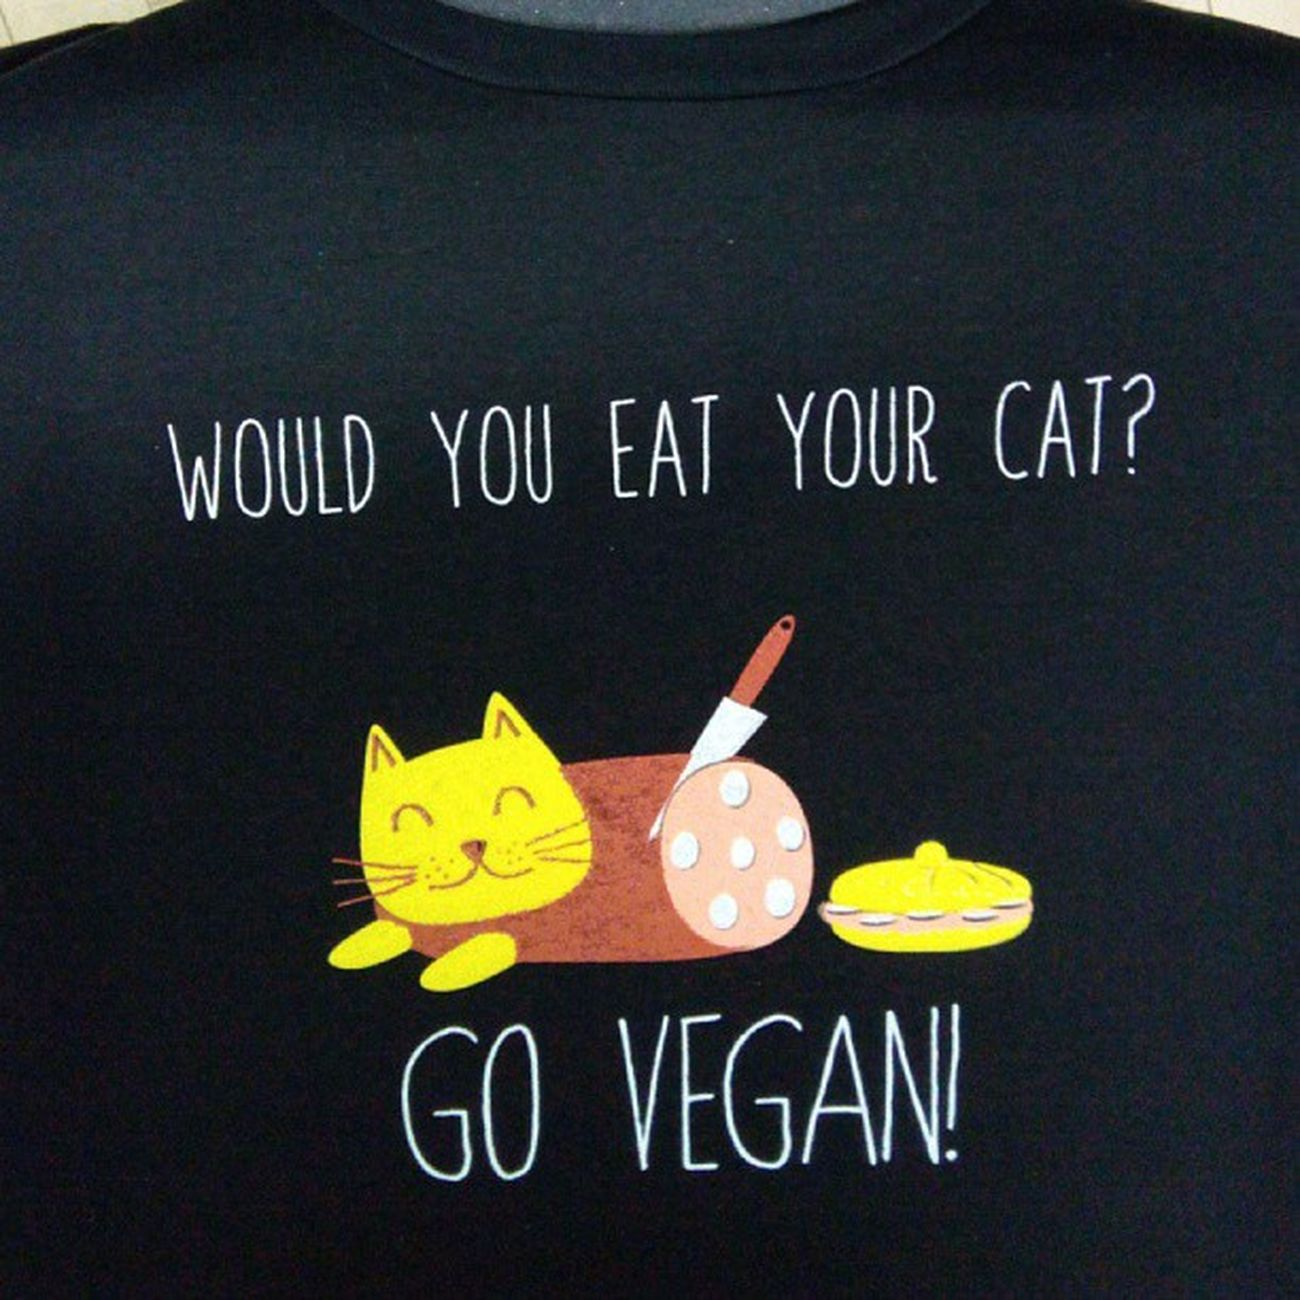 Available at #vegfestuk #london this weekend. #vegantshirts #vegan #cat Cat London Vegan Vegantshirts Vegfestuk Vegfestlondon